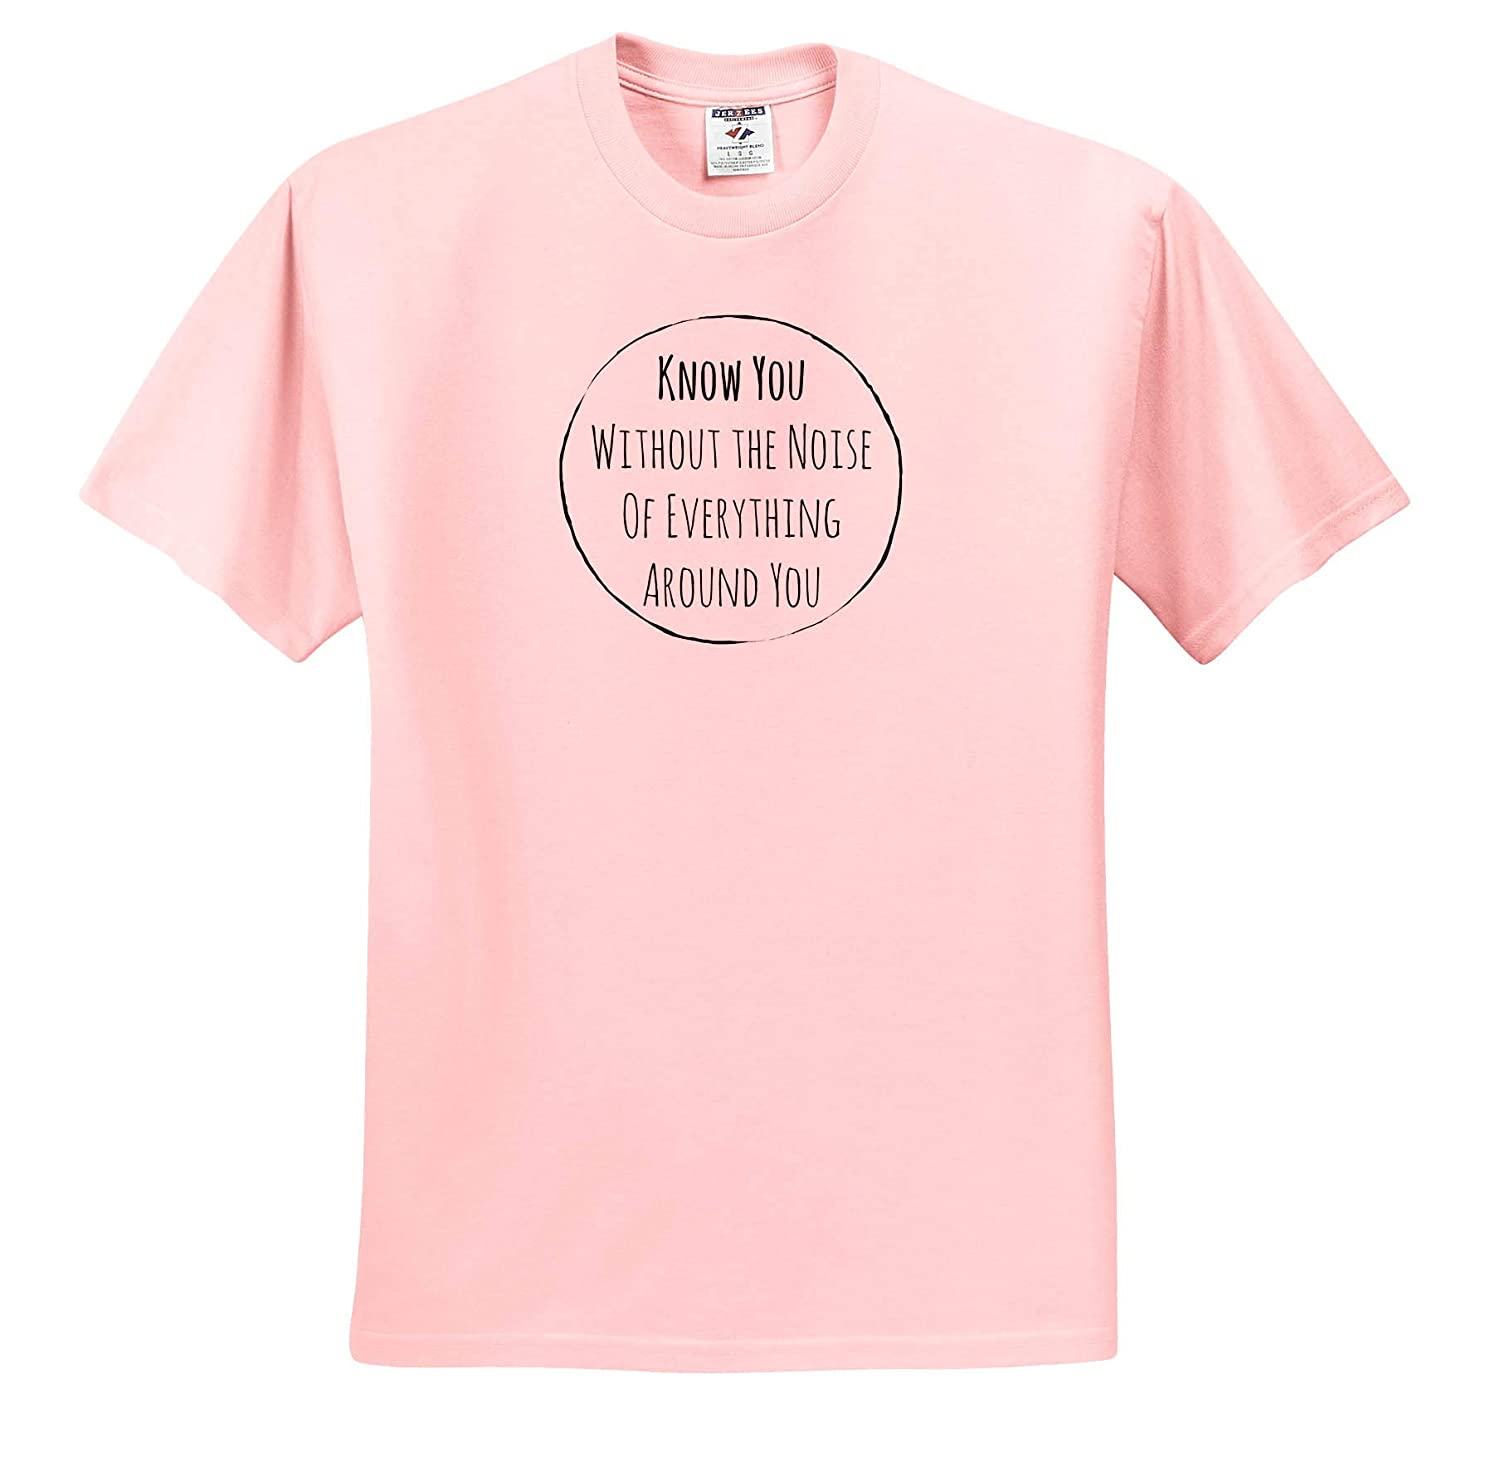 Adult T-Shirt XL Image of Know You Without The Noise of Everything Around You 3dRose Carrie Merchant Image ts/_310881